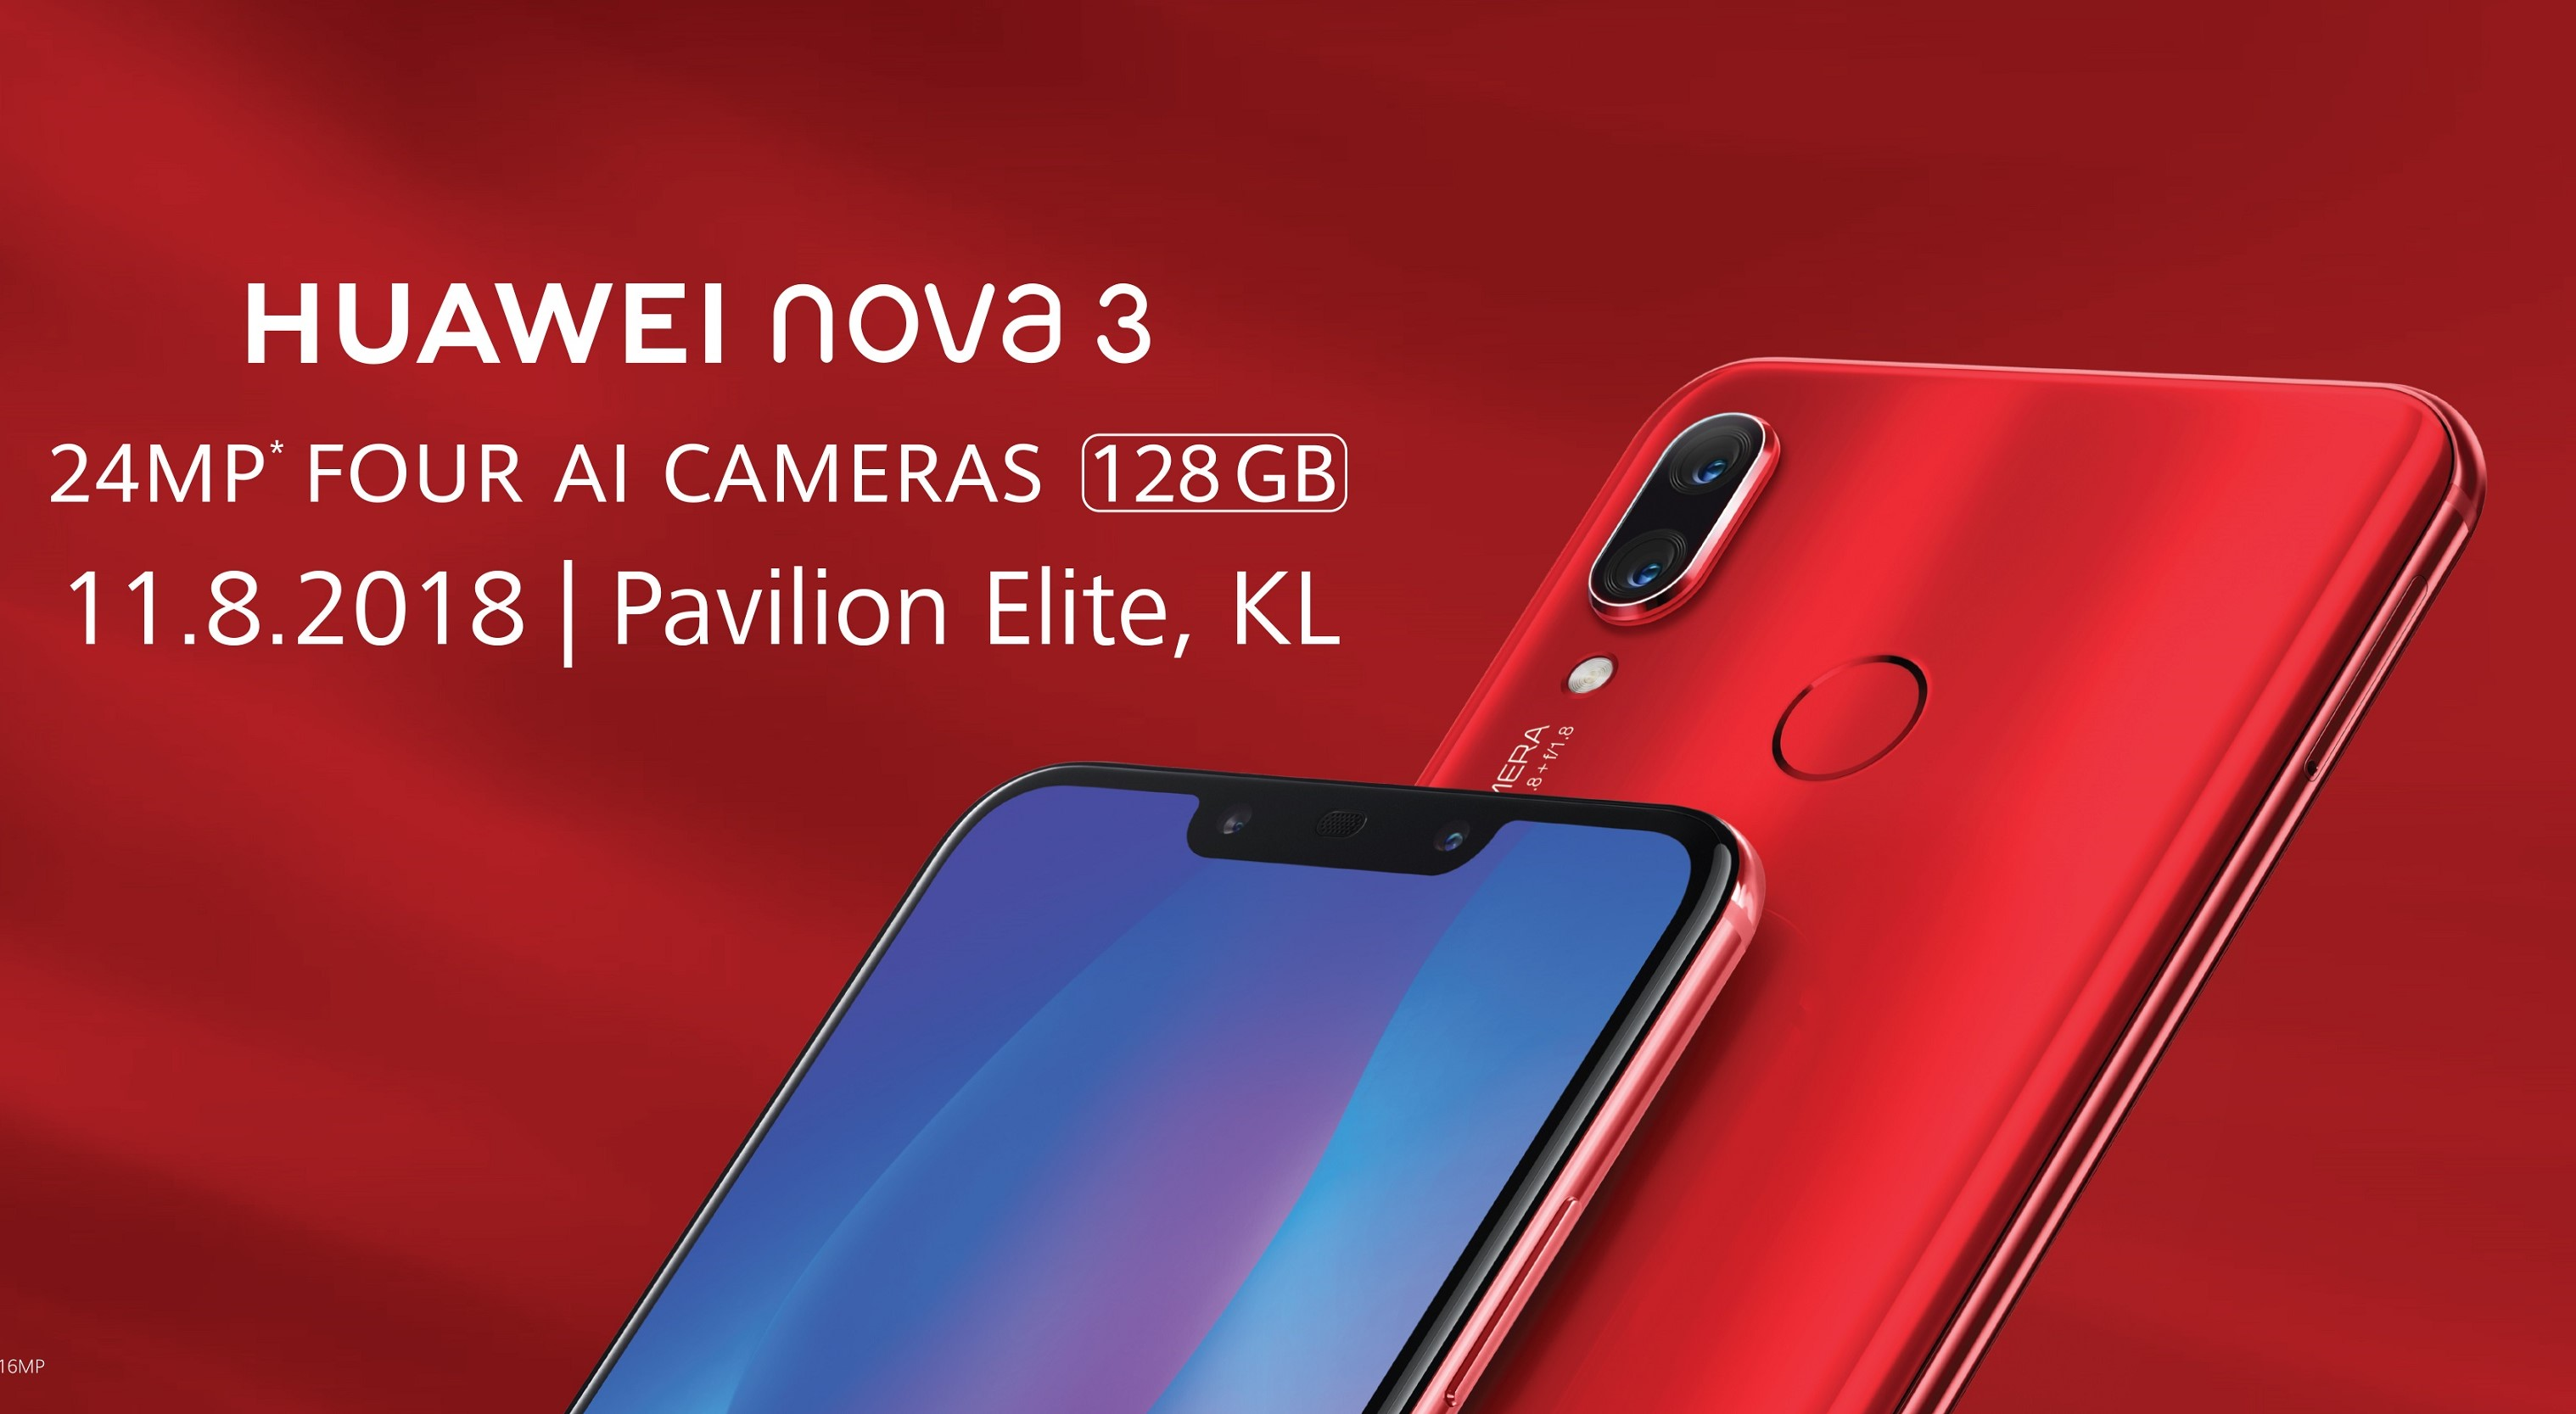 Huawei Nova 3 To Be Available In Malaysia This Weekend